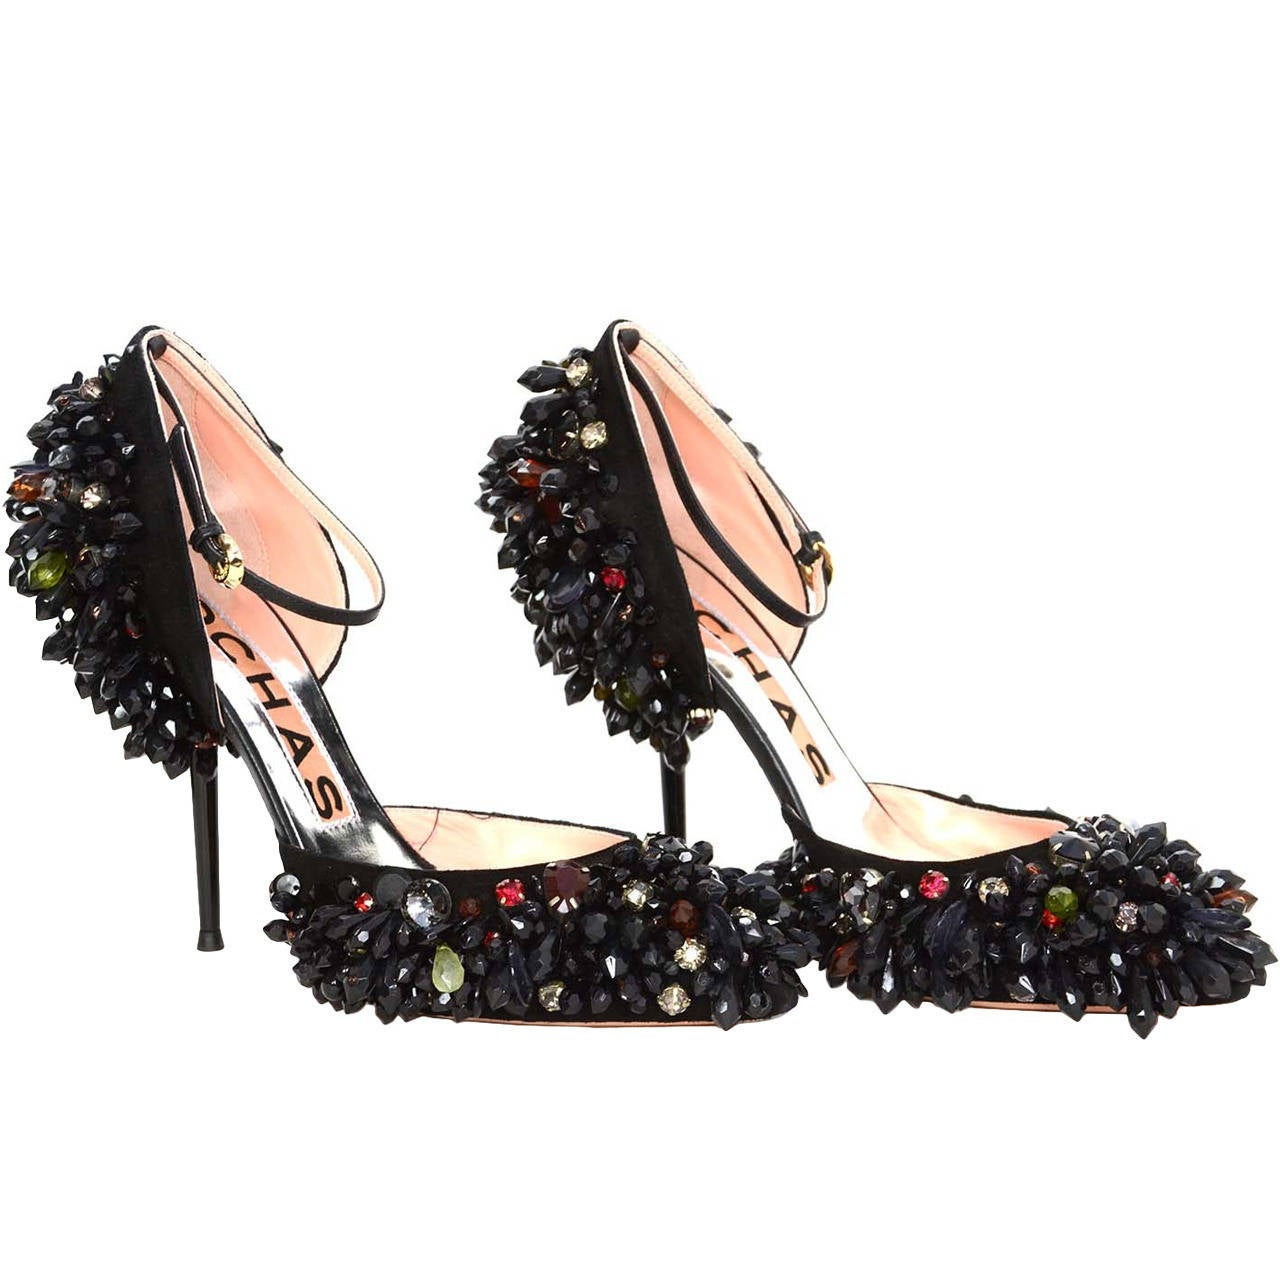 ROCHAS Black Embellished Pointed Toe Pumps sz 39 rt. $2,075 For Sale